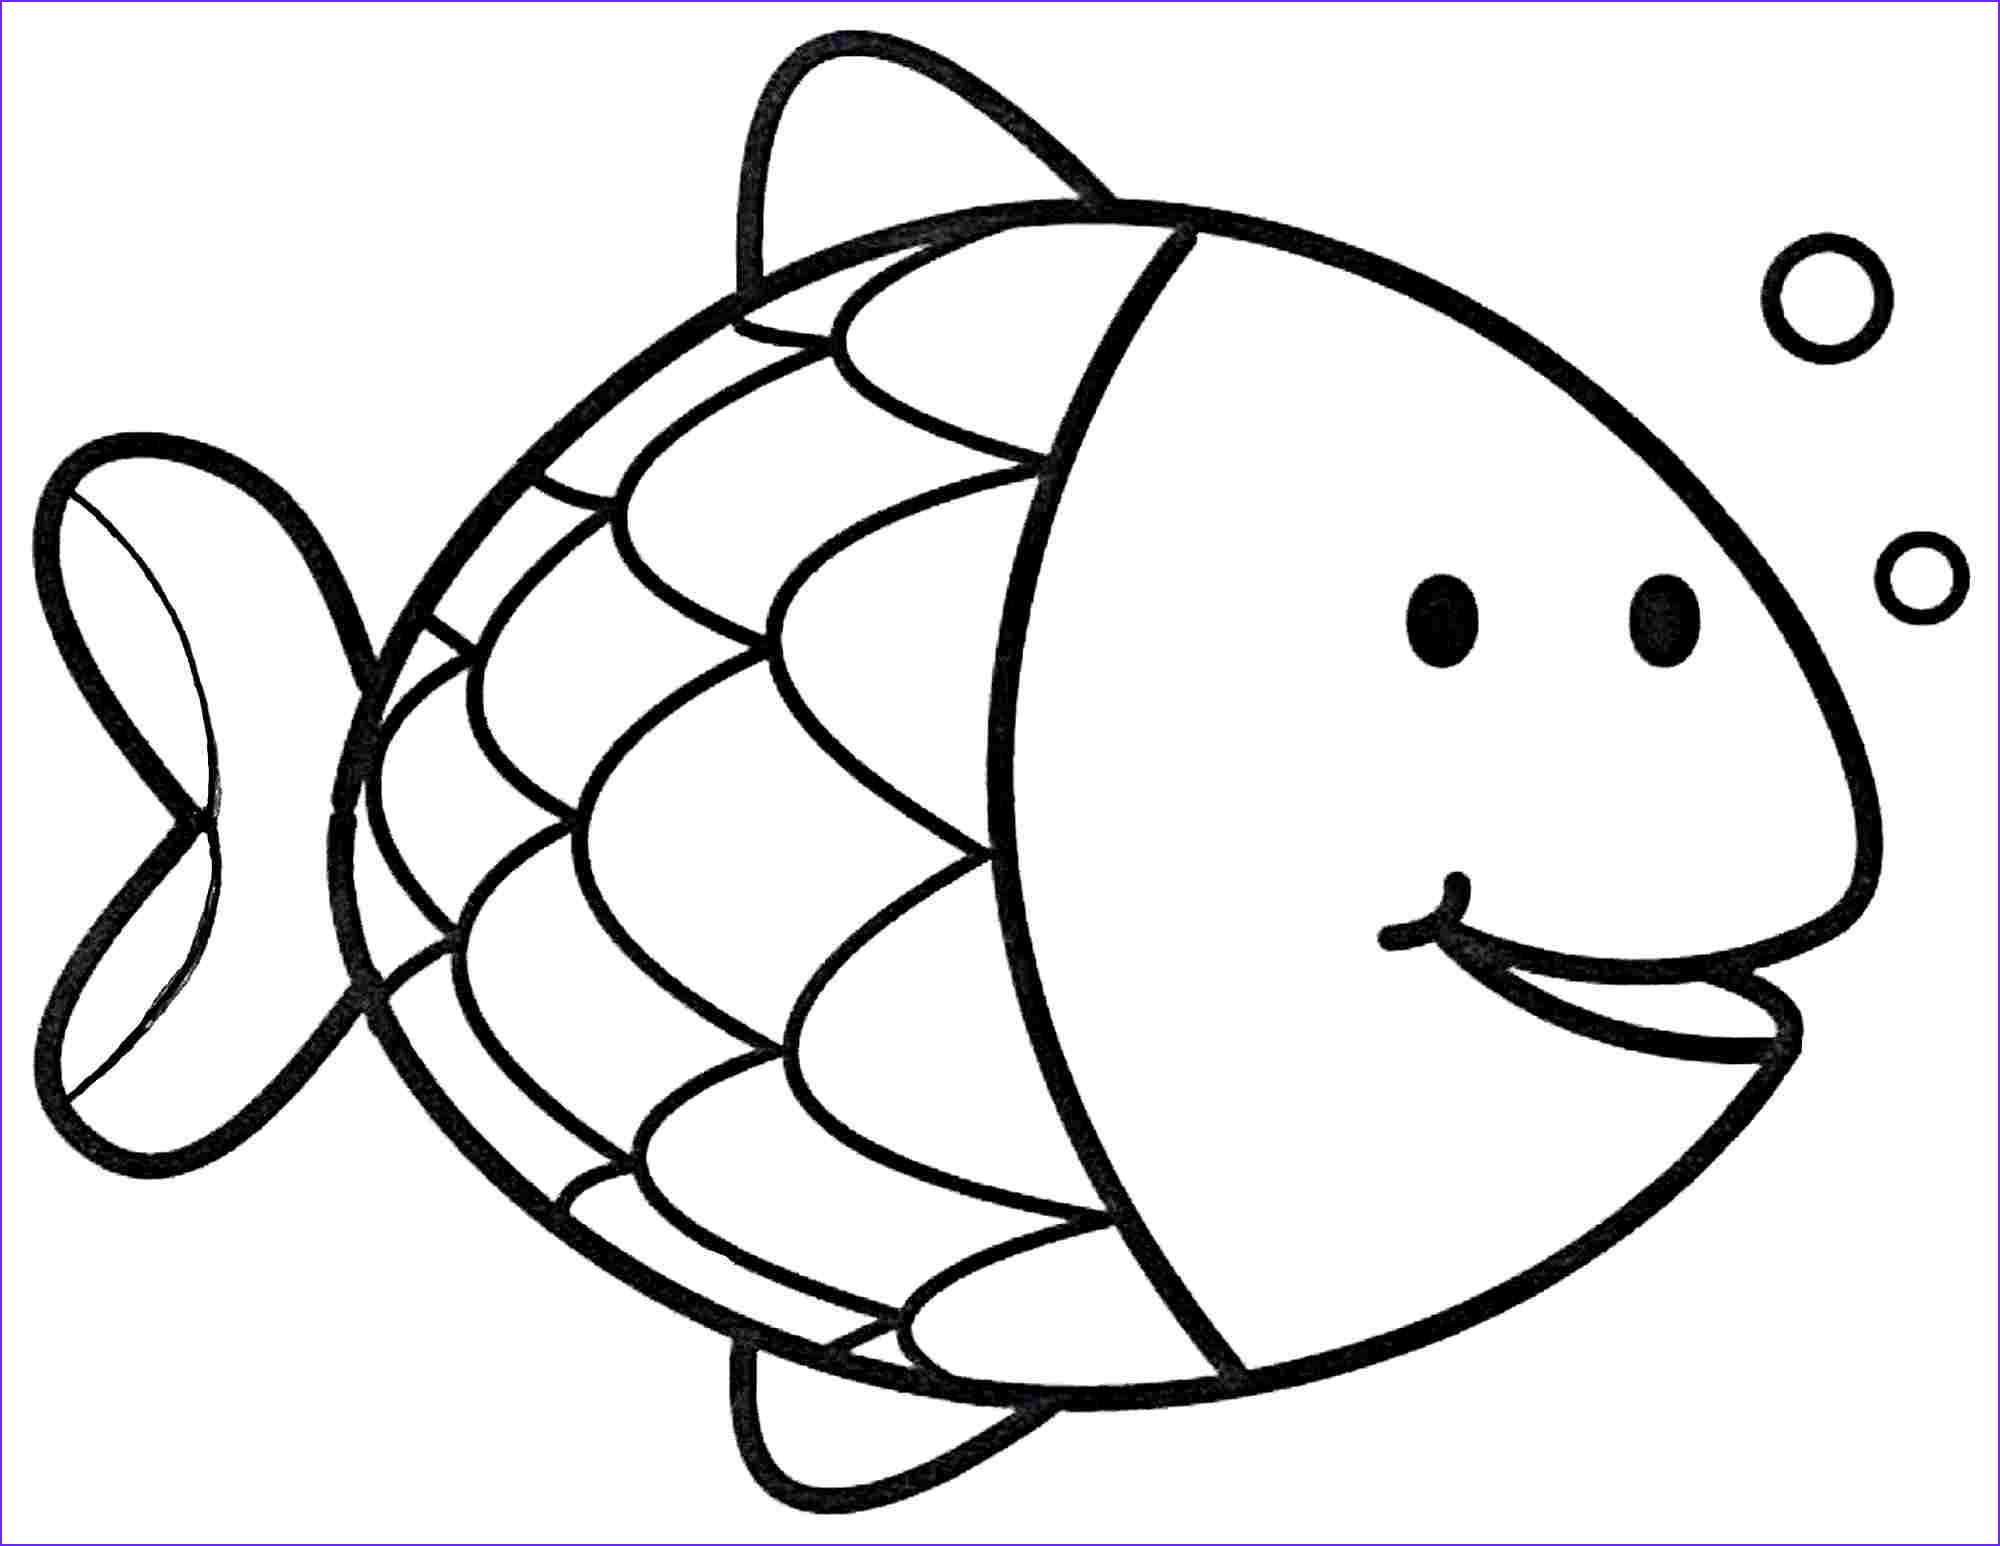 Fish Coloring Pages Cool Image Pin by Hester Mari Van Zyl On Educational Ideas